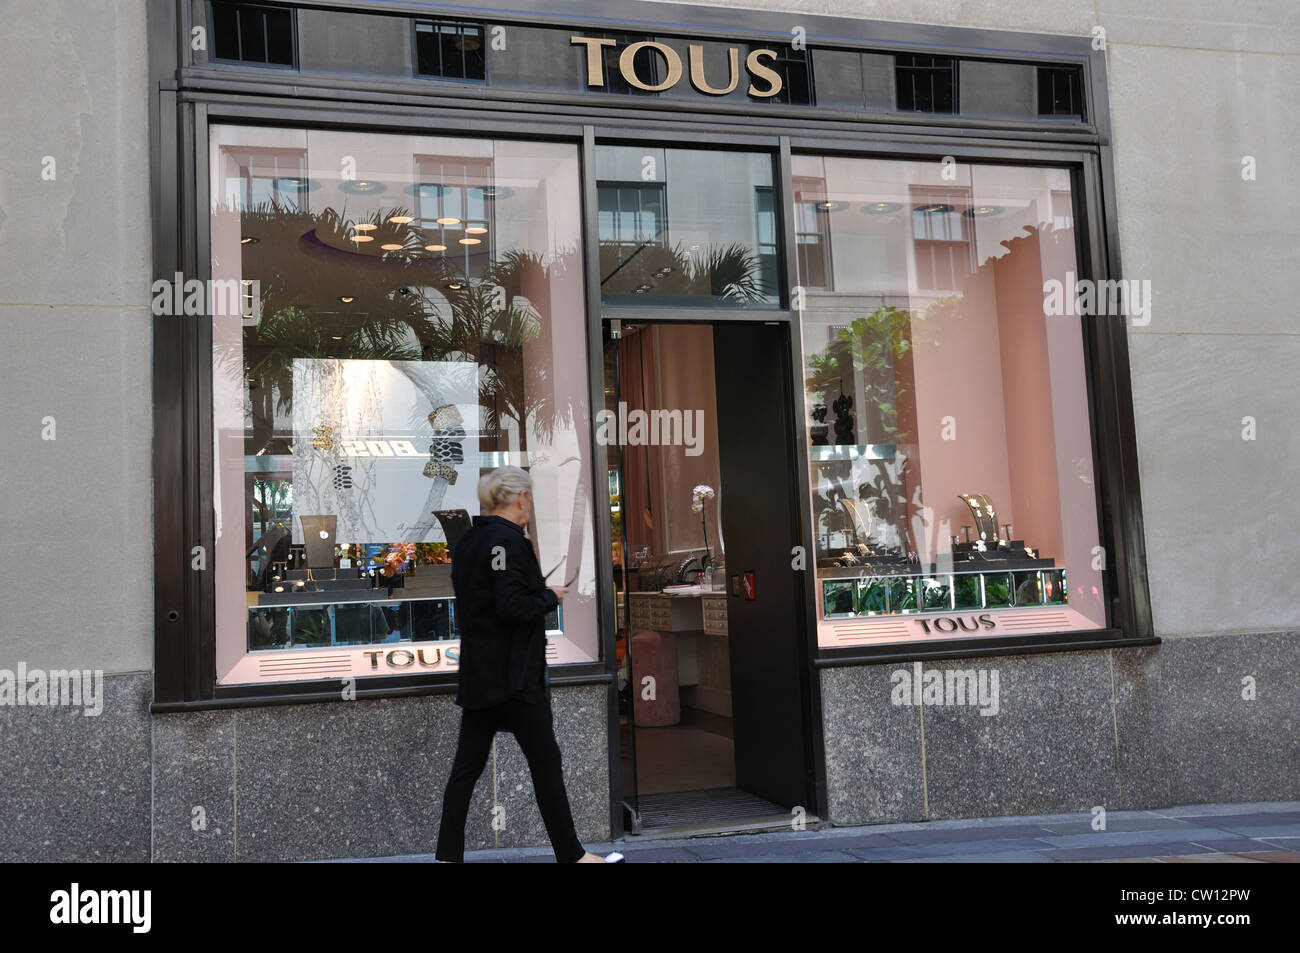 Tous jewelry store new york usa stock photo 49811297 for Jewelry stores in new york ny